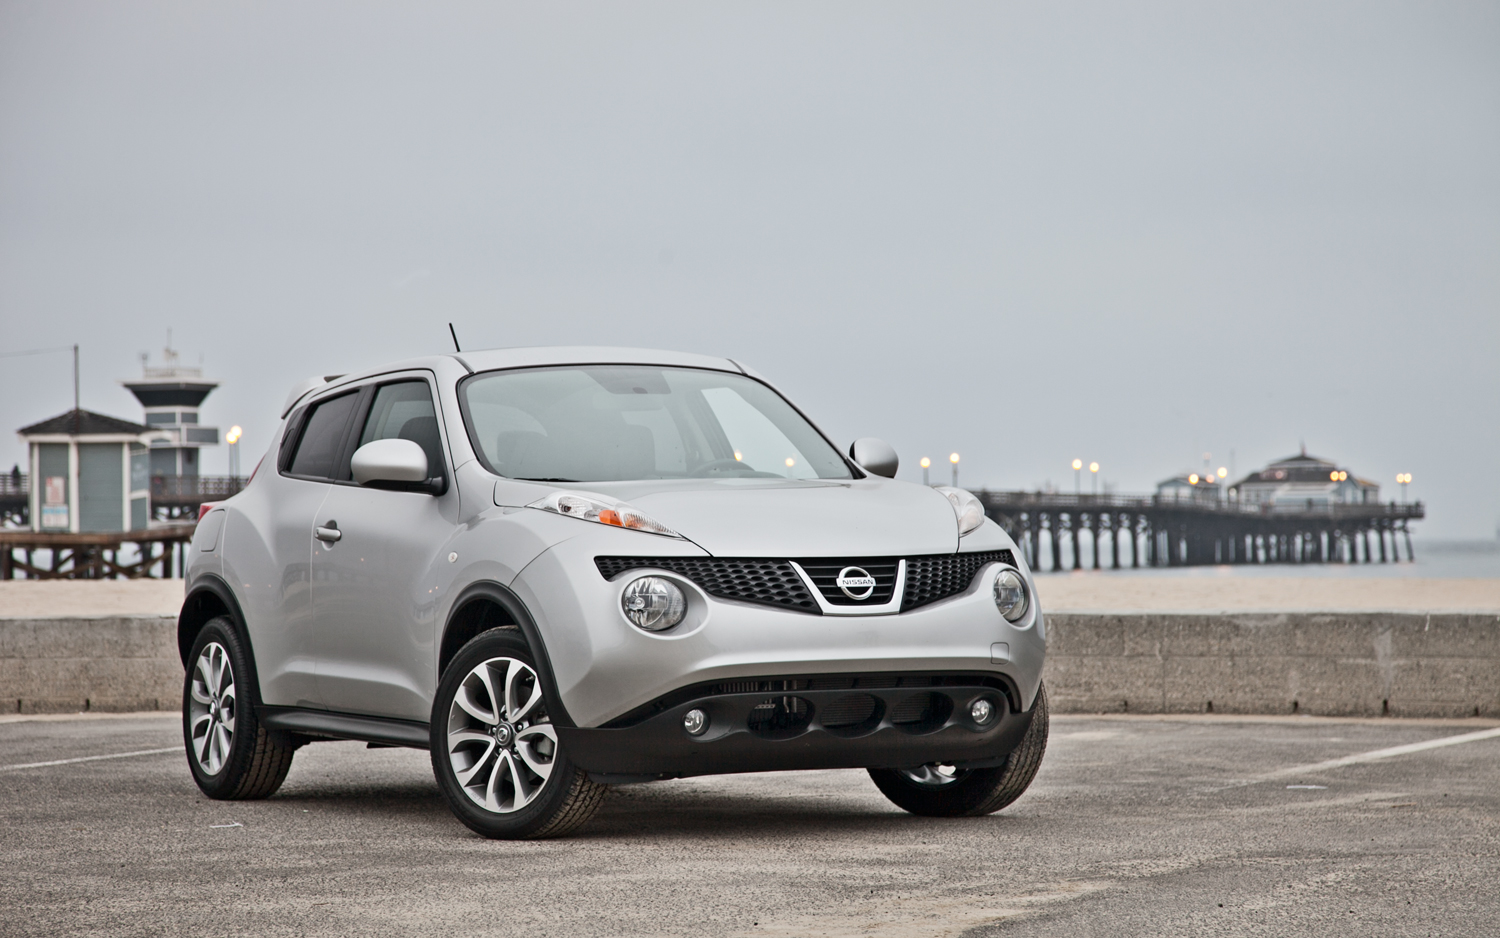 2012 nissan juke pictures information and specs auto for Nissan juke automatik